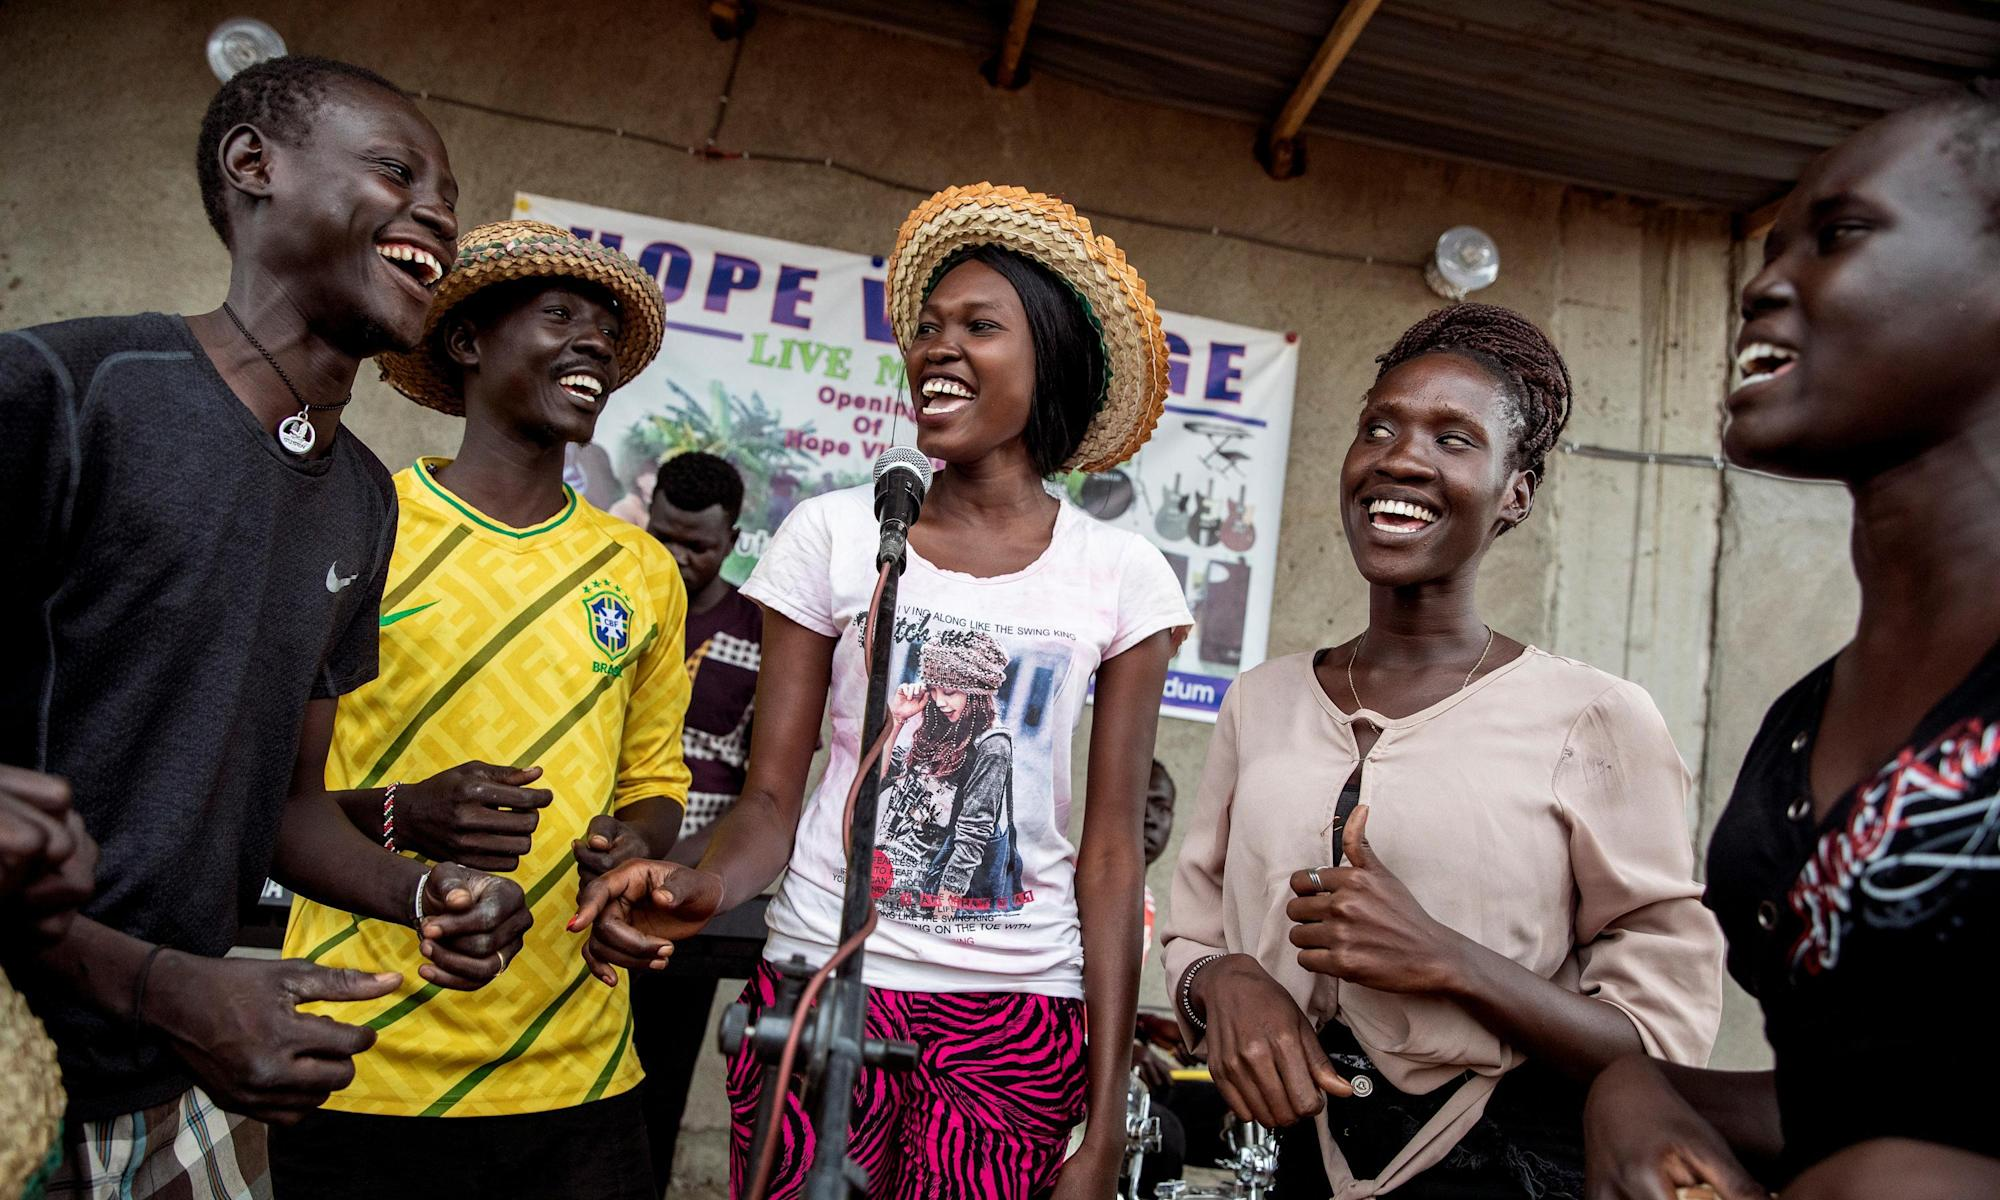 'South Sudan is one long poem': the music that shaped a nation – photo essay